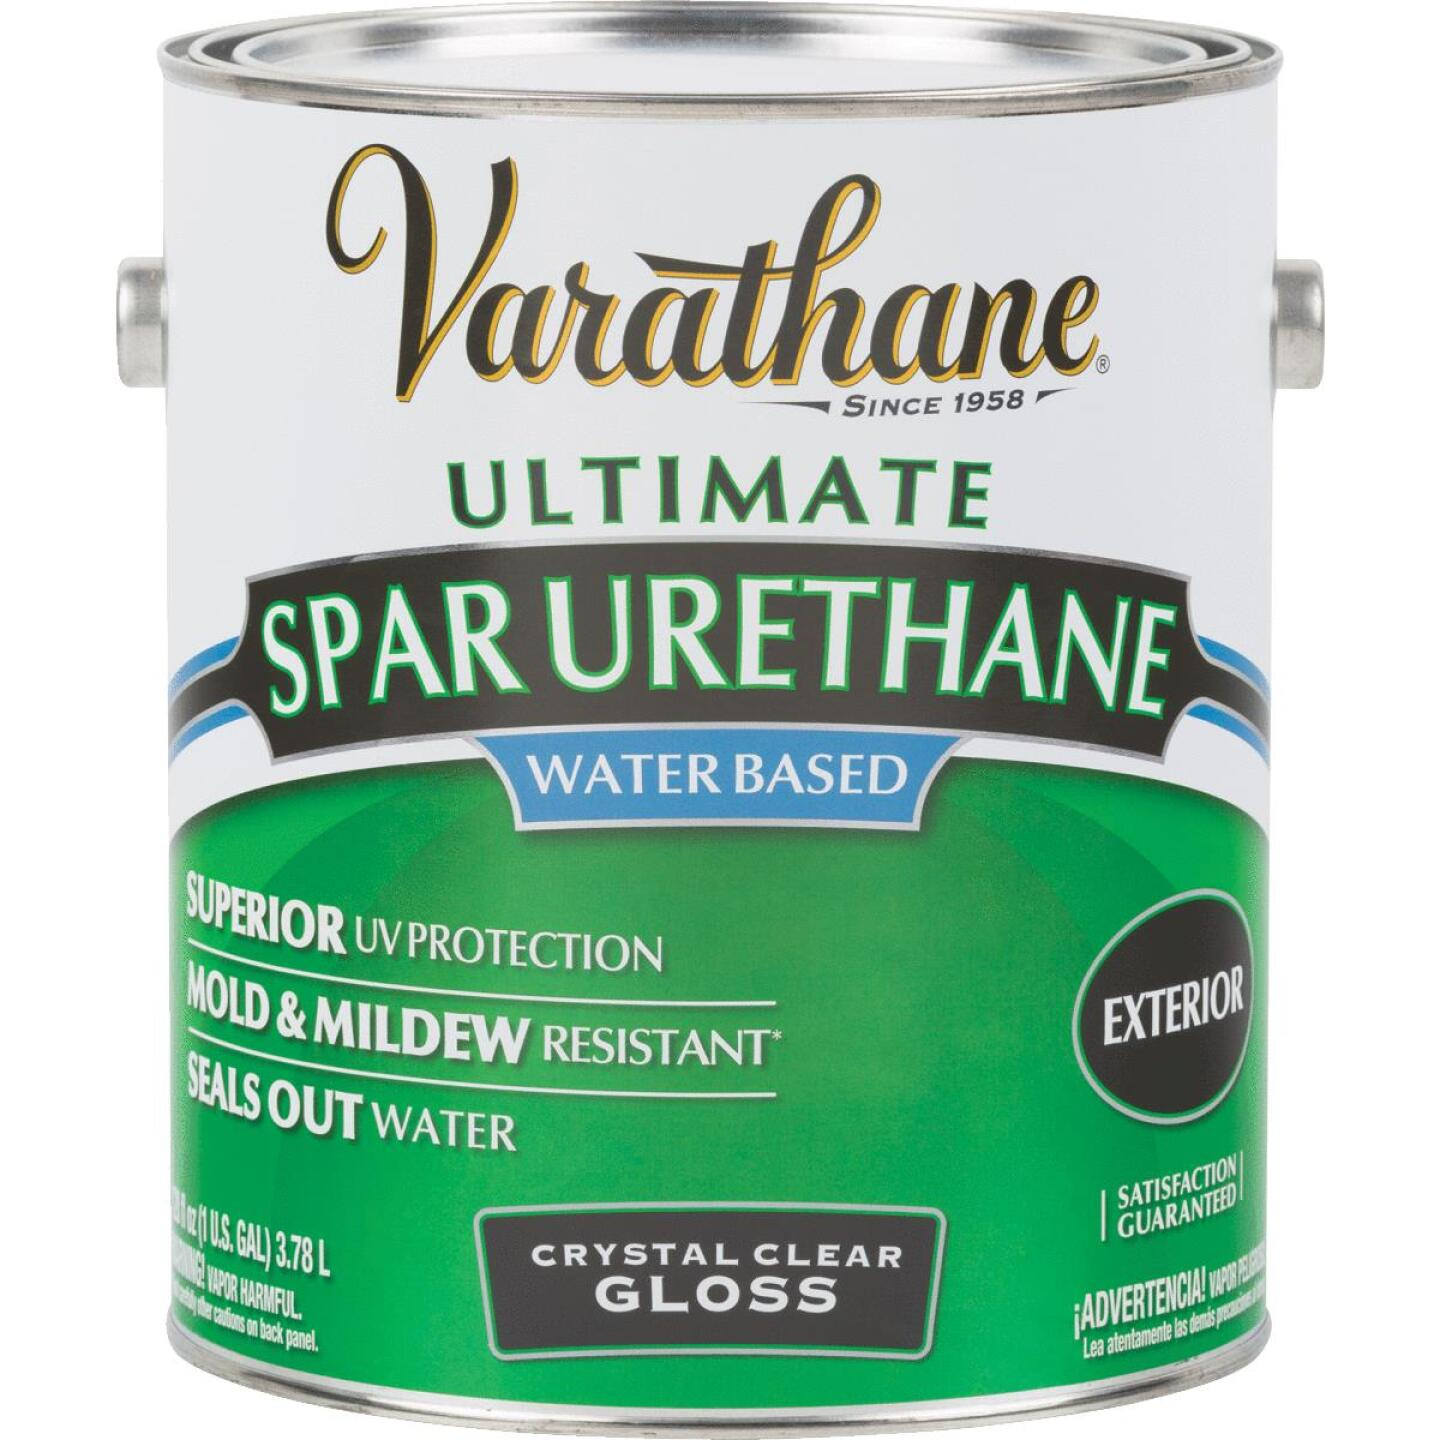 Varathane Gloss Clear Water Based Exterior Spar Urethane, 1 Gal. Image 1